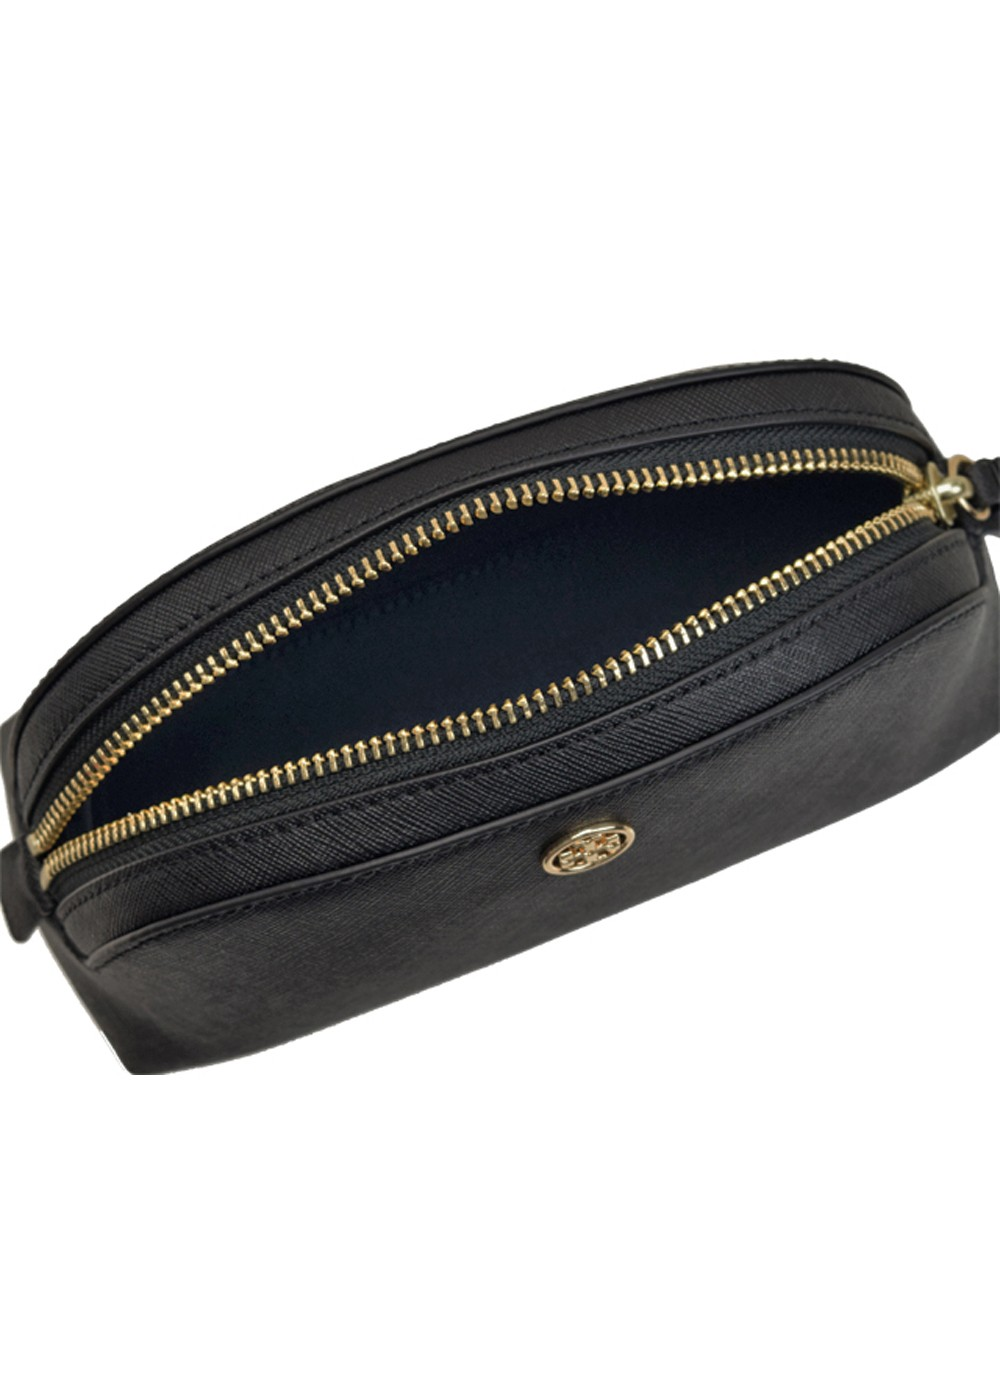 【5/23入荷】ROBINSON SMALL MAKEUP BAG|BLACK/ROYAL 金具ゴールド|ポーチ|Tory Burch